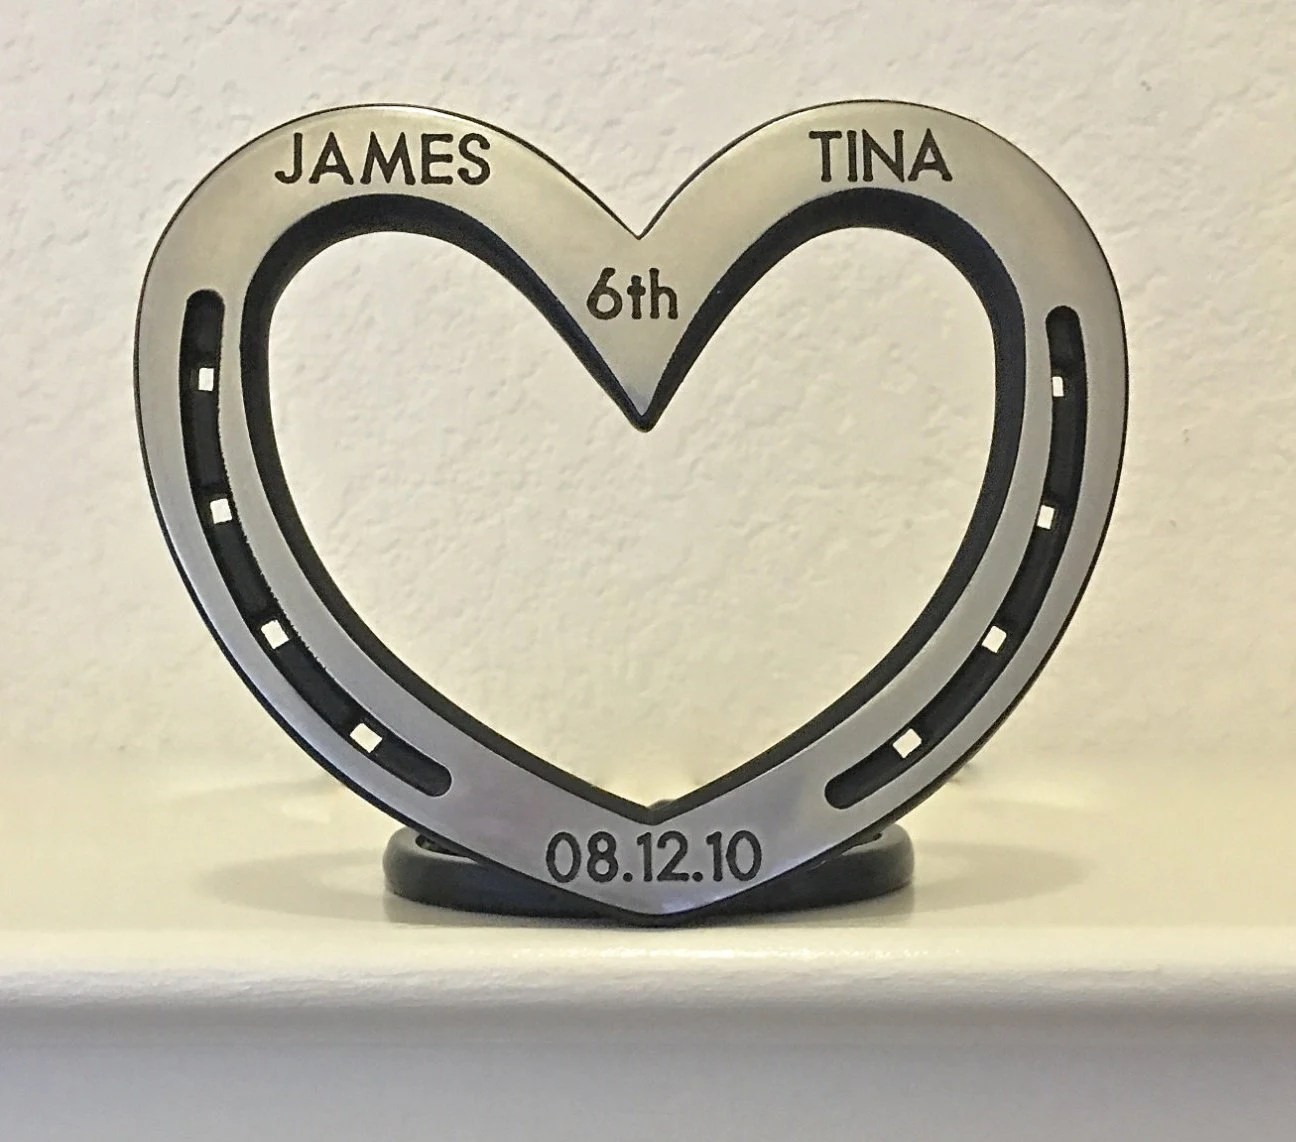 6th anniversary gift 6th wedding anniversary gift Standing heart personalized horseshoe steel or iron 6th wedding anniversary sixth anniversary Equestrian wife gift